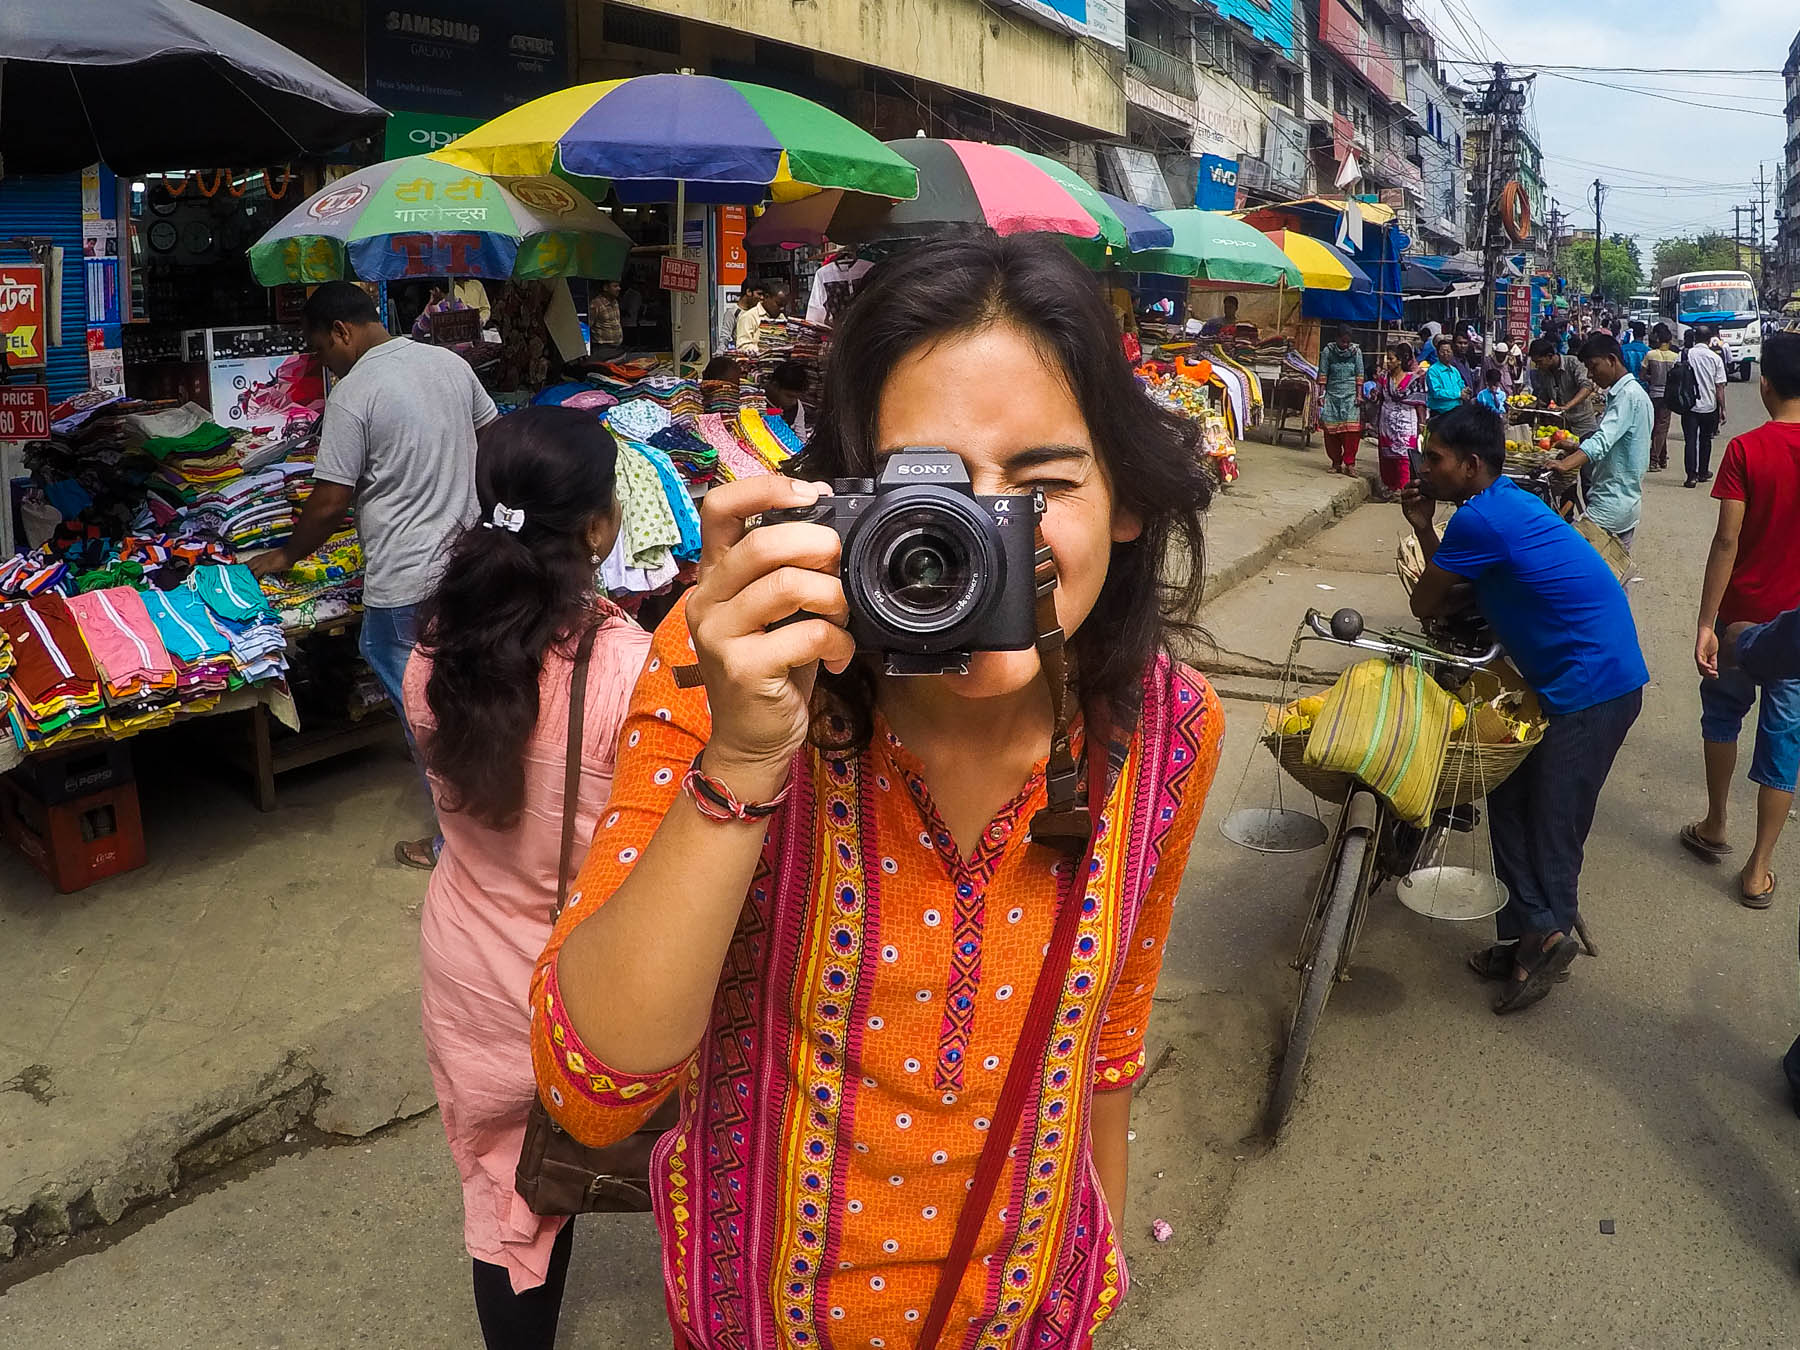 How to upgrade from a Nikon DSLR to a Sony a7RII mirrorless full-frame camera, the best travel camera out there - Alex with a Sony a7RII in a market in Assam, India - Lost With Purpose